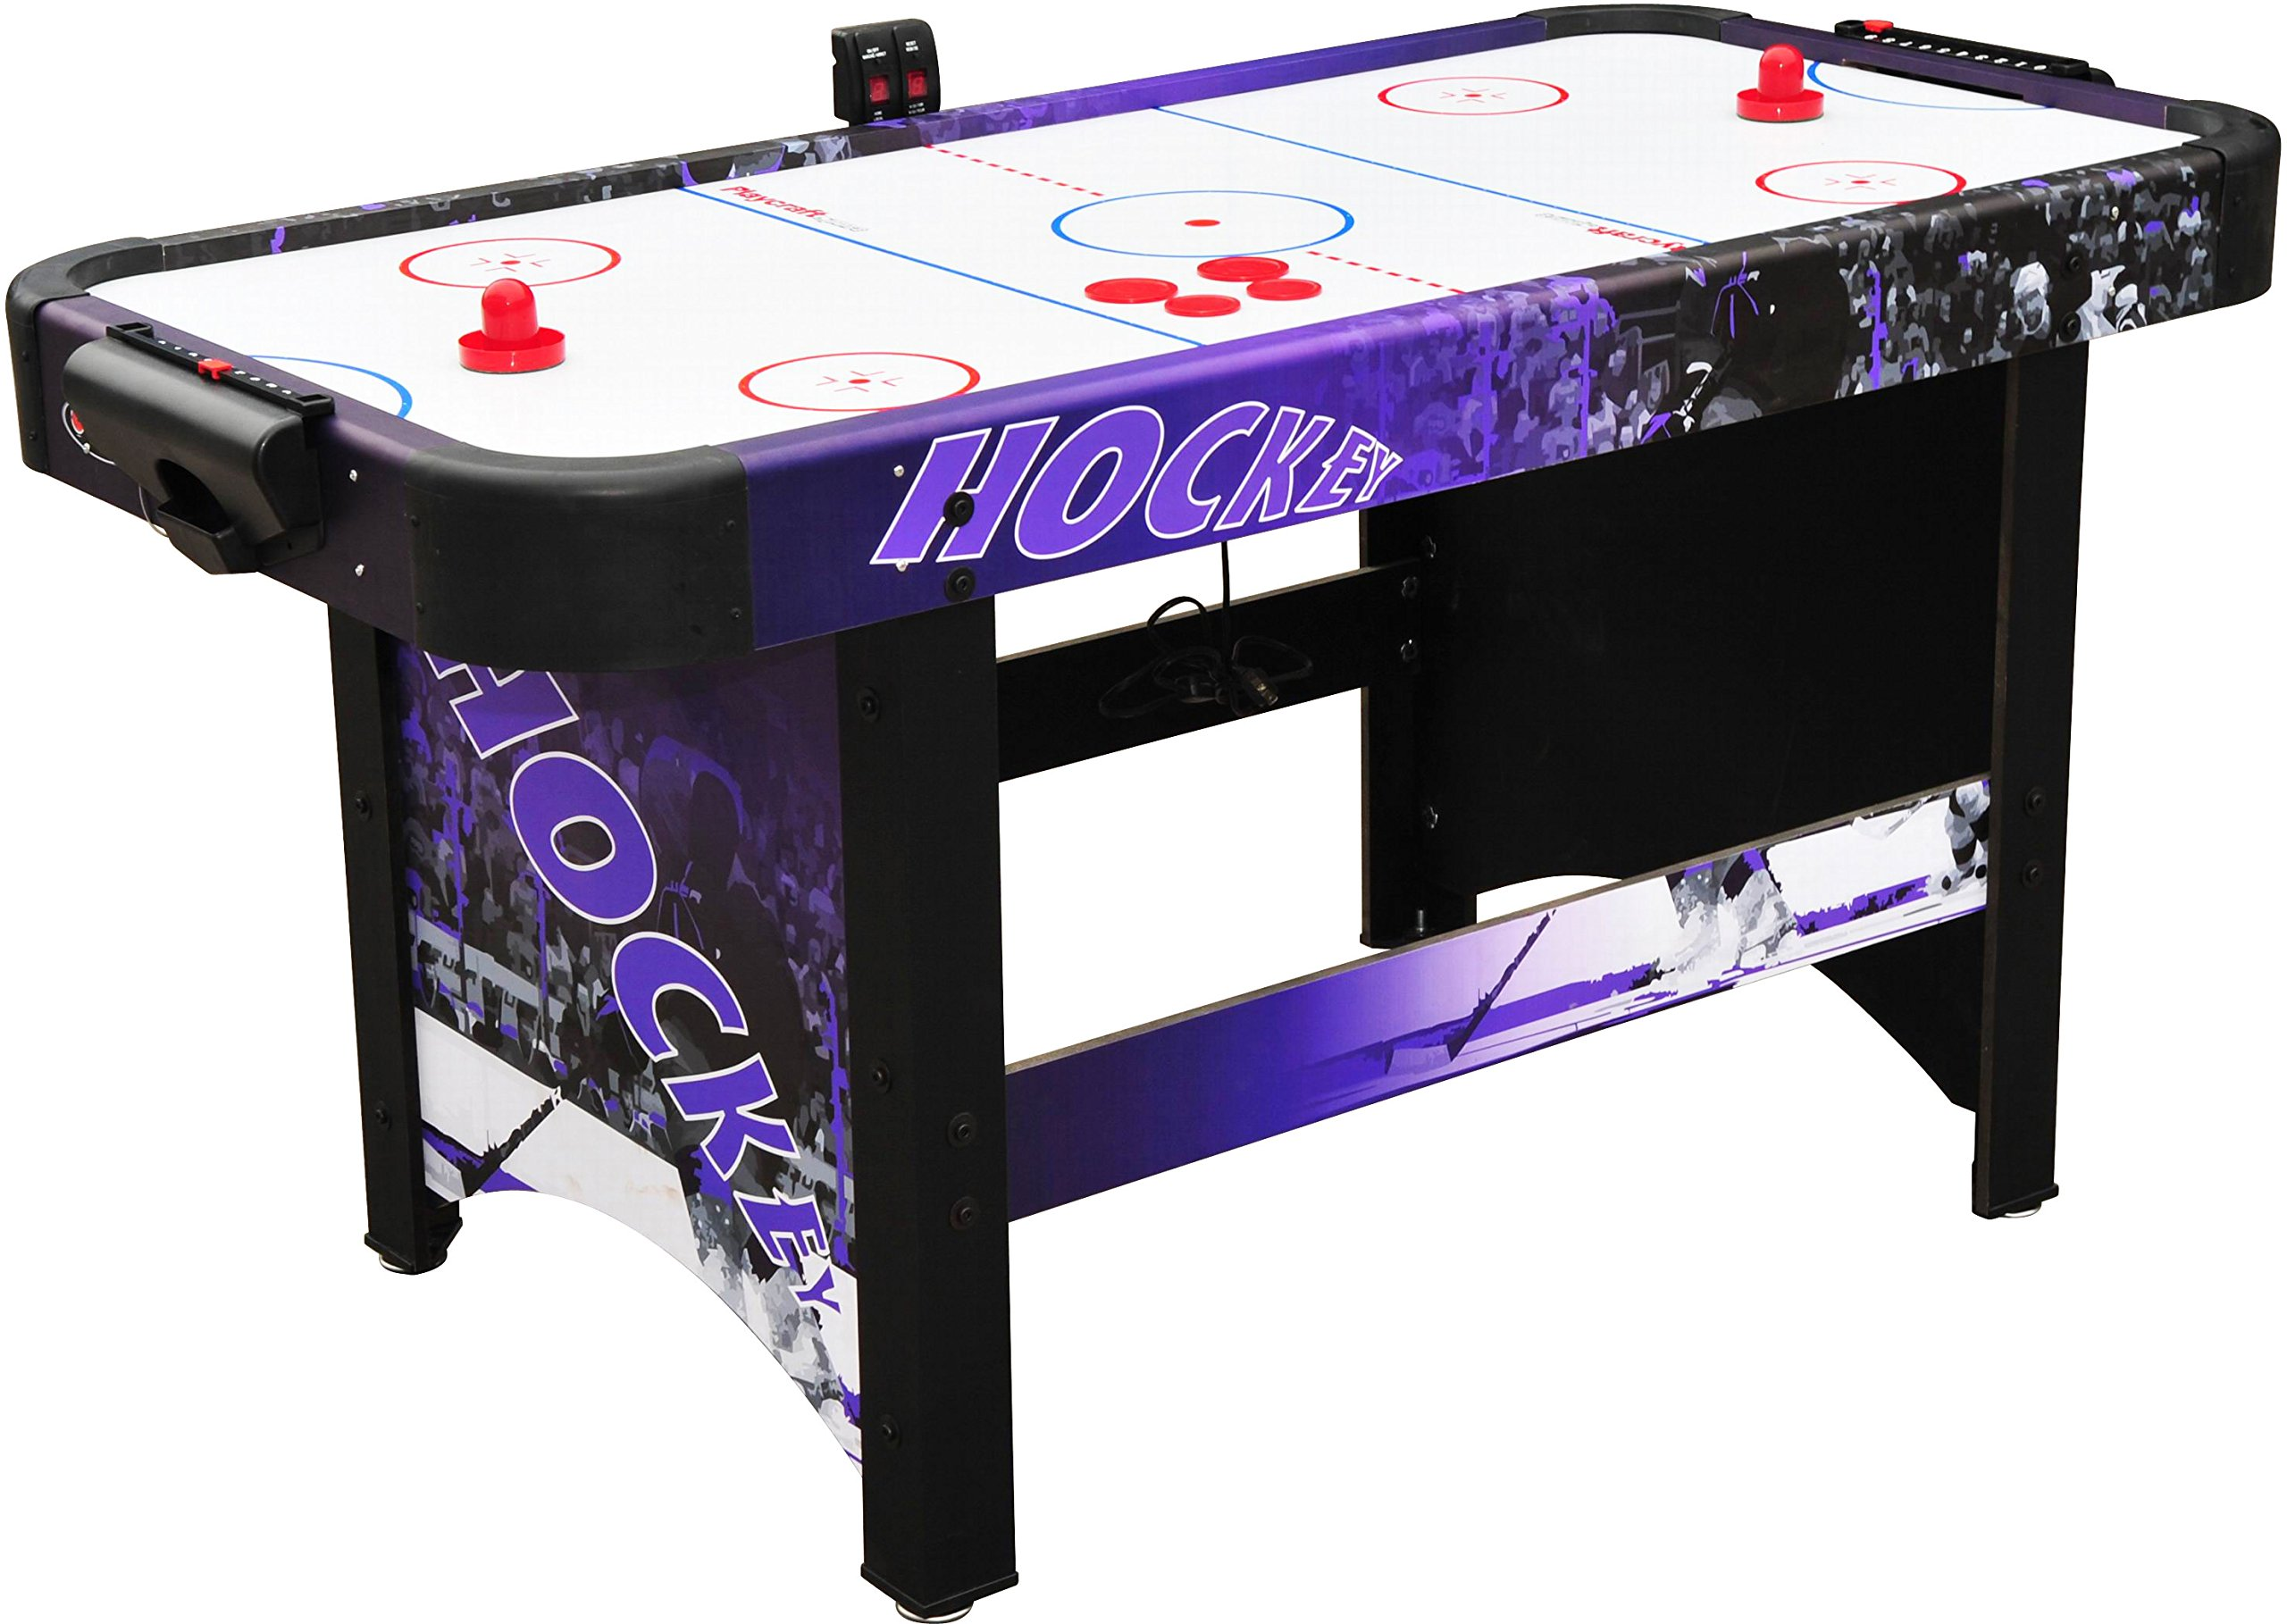 Playcraft Sport Shoot Out Plus Air Hockey Table - Purple by Playcraft Sport